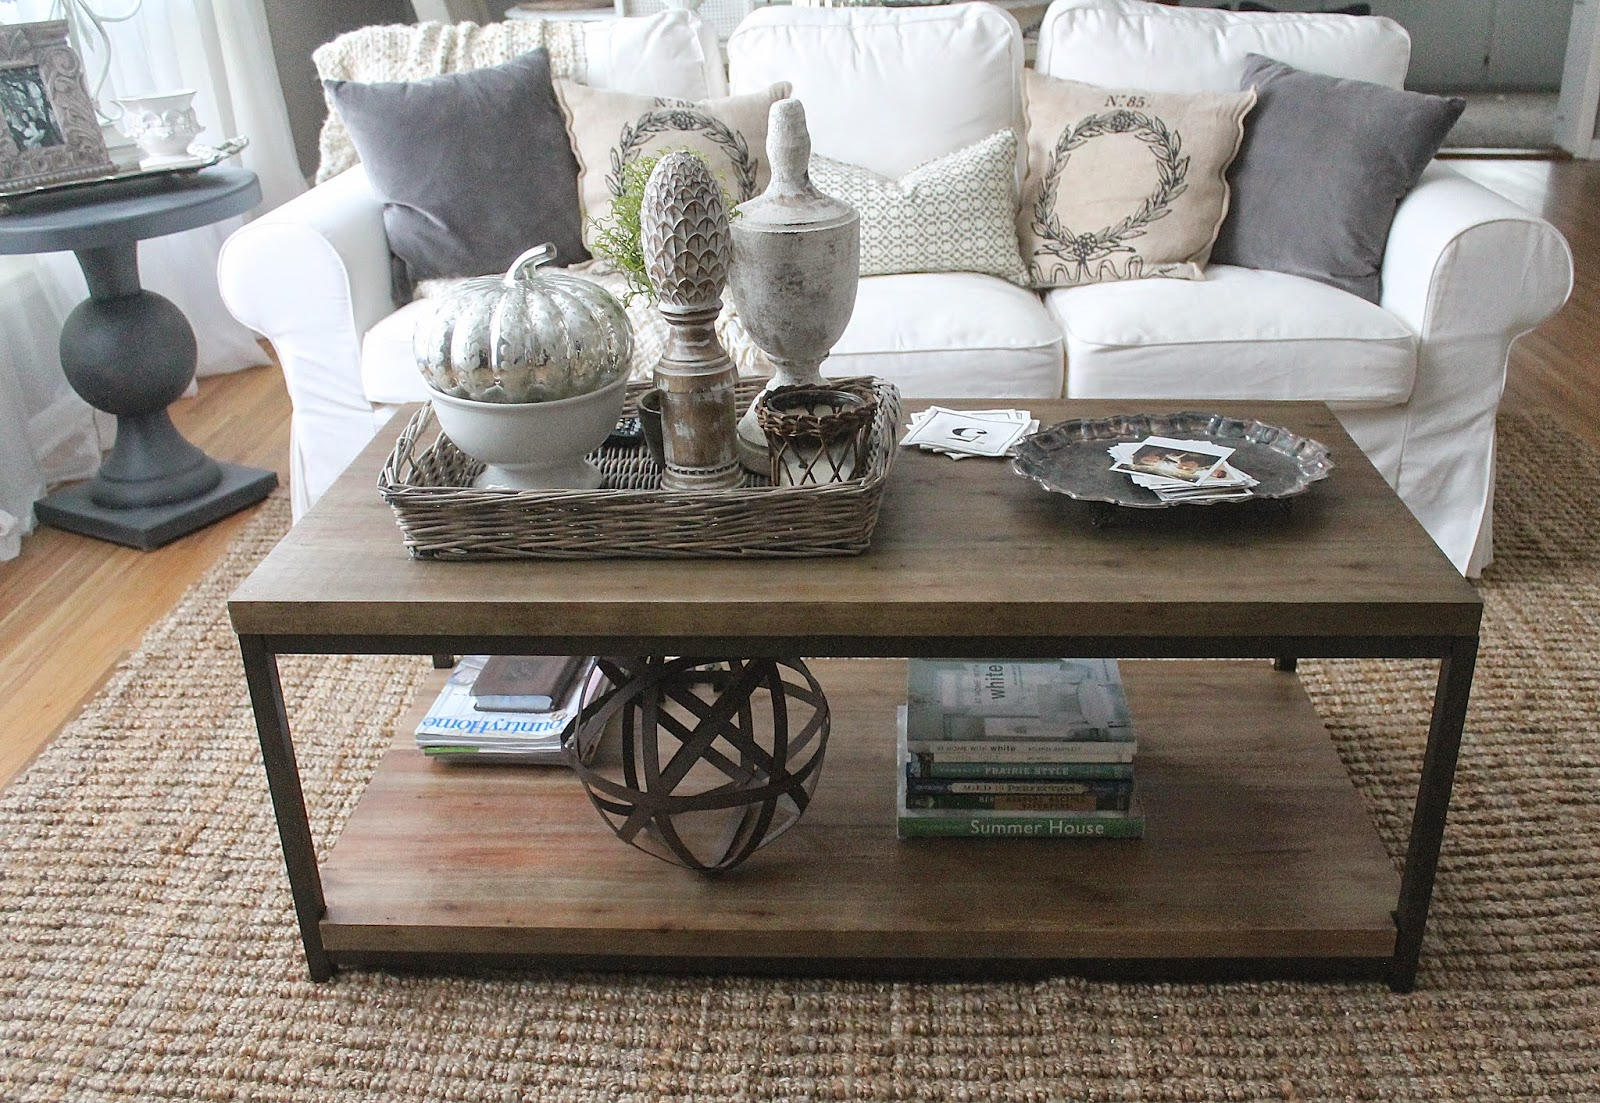 This Is How Our Living Room Coffee Table Looks On A Daily Basis It Has Some Of My Very Favorite Accessories Gray Wicker Tray Few Large Finials